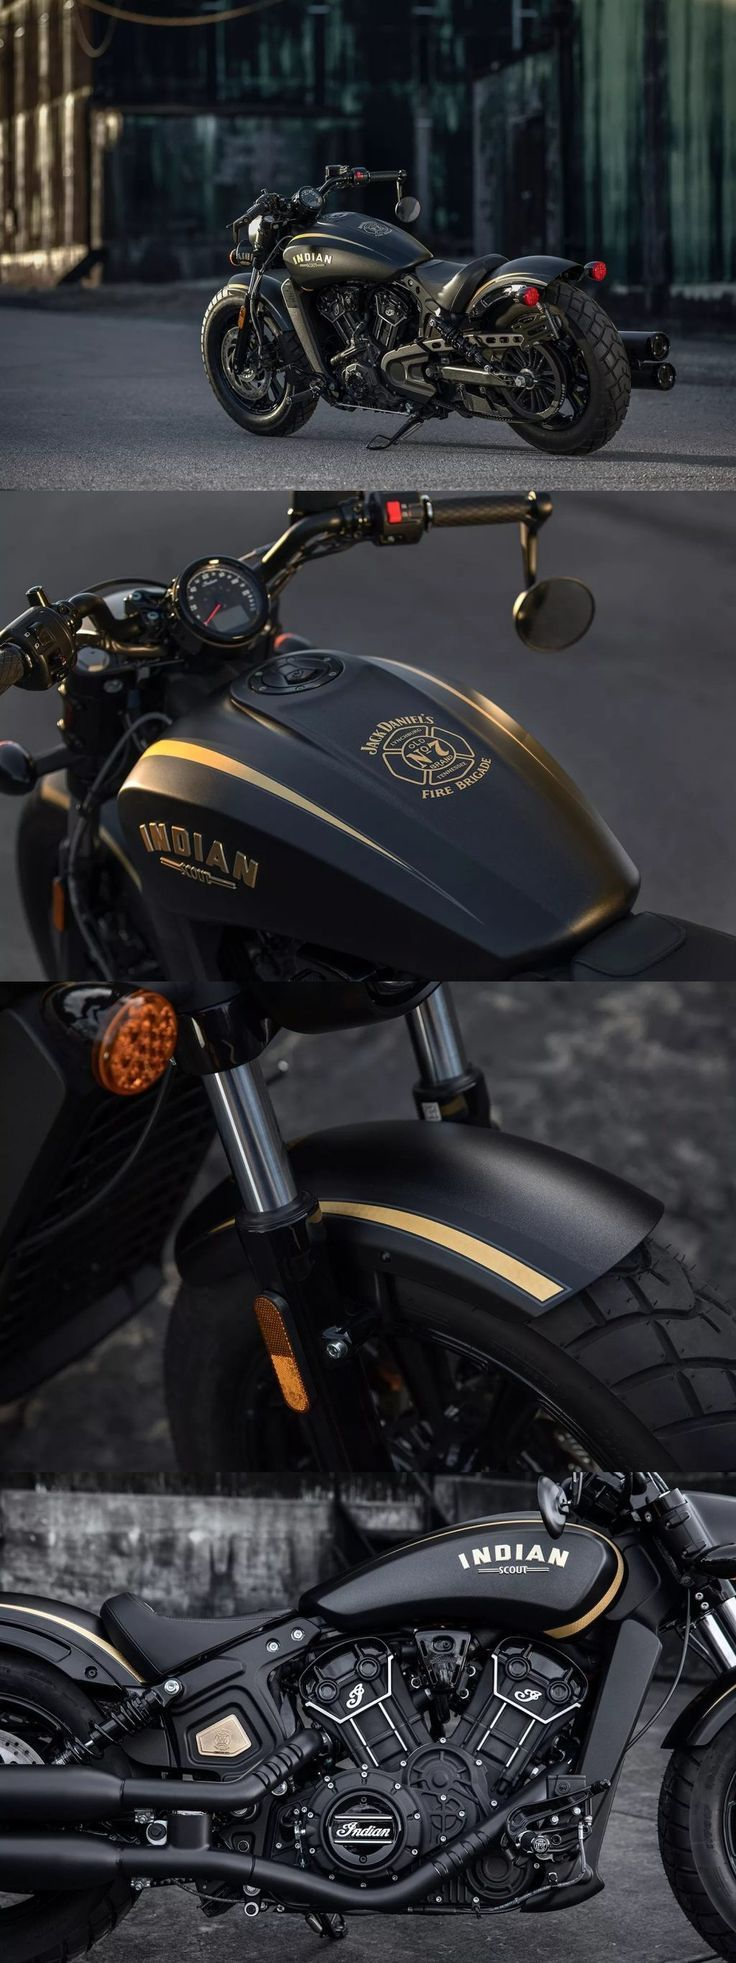 Indian Scout Model Power, Mileage, Safety, Colors